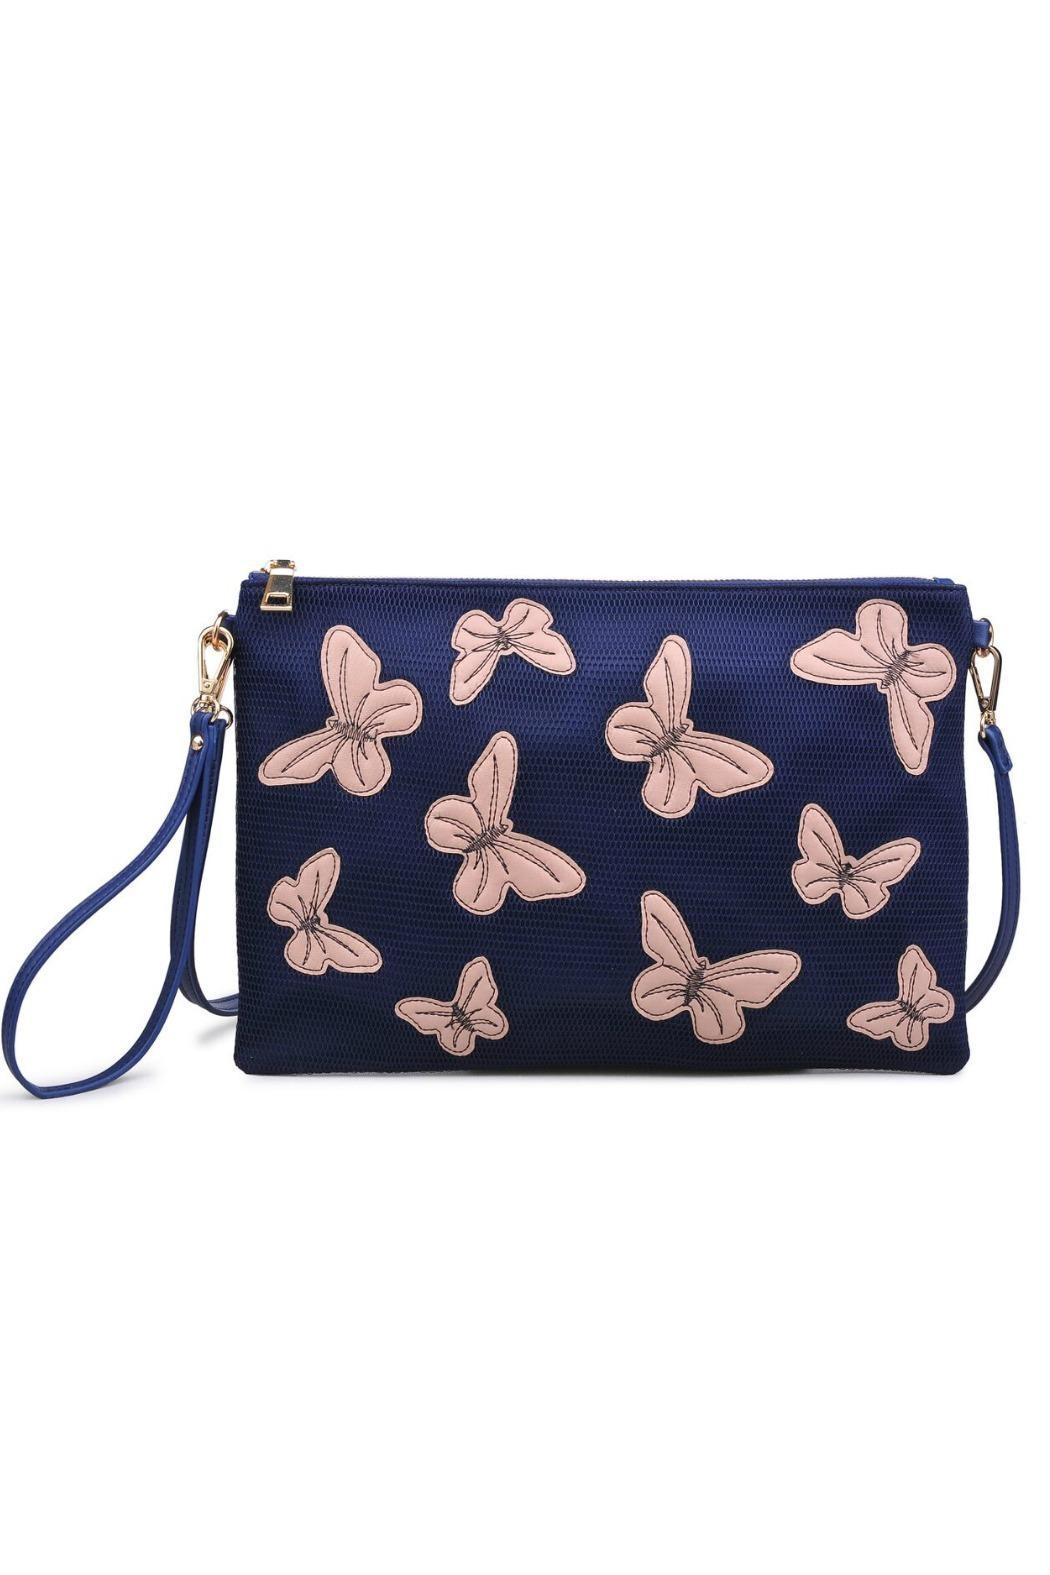 Urban Expressions Pappillon Crossbody Clutch - Main Image